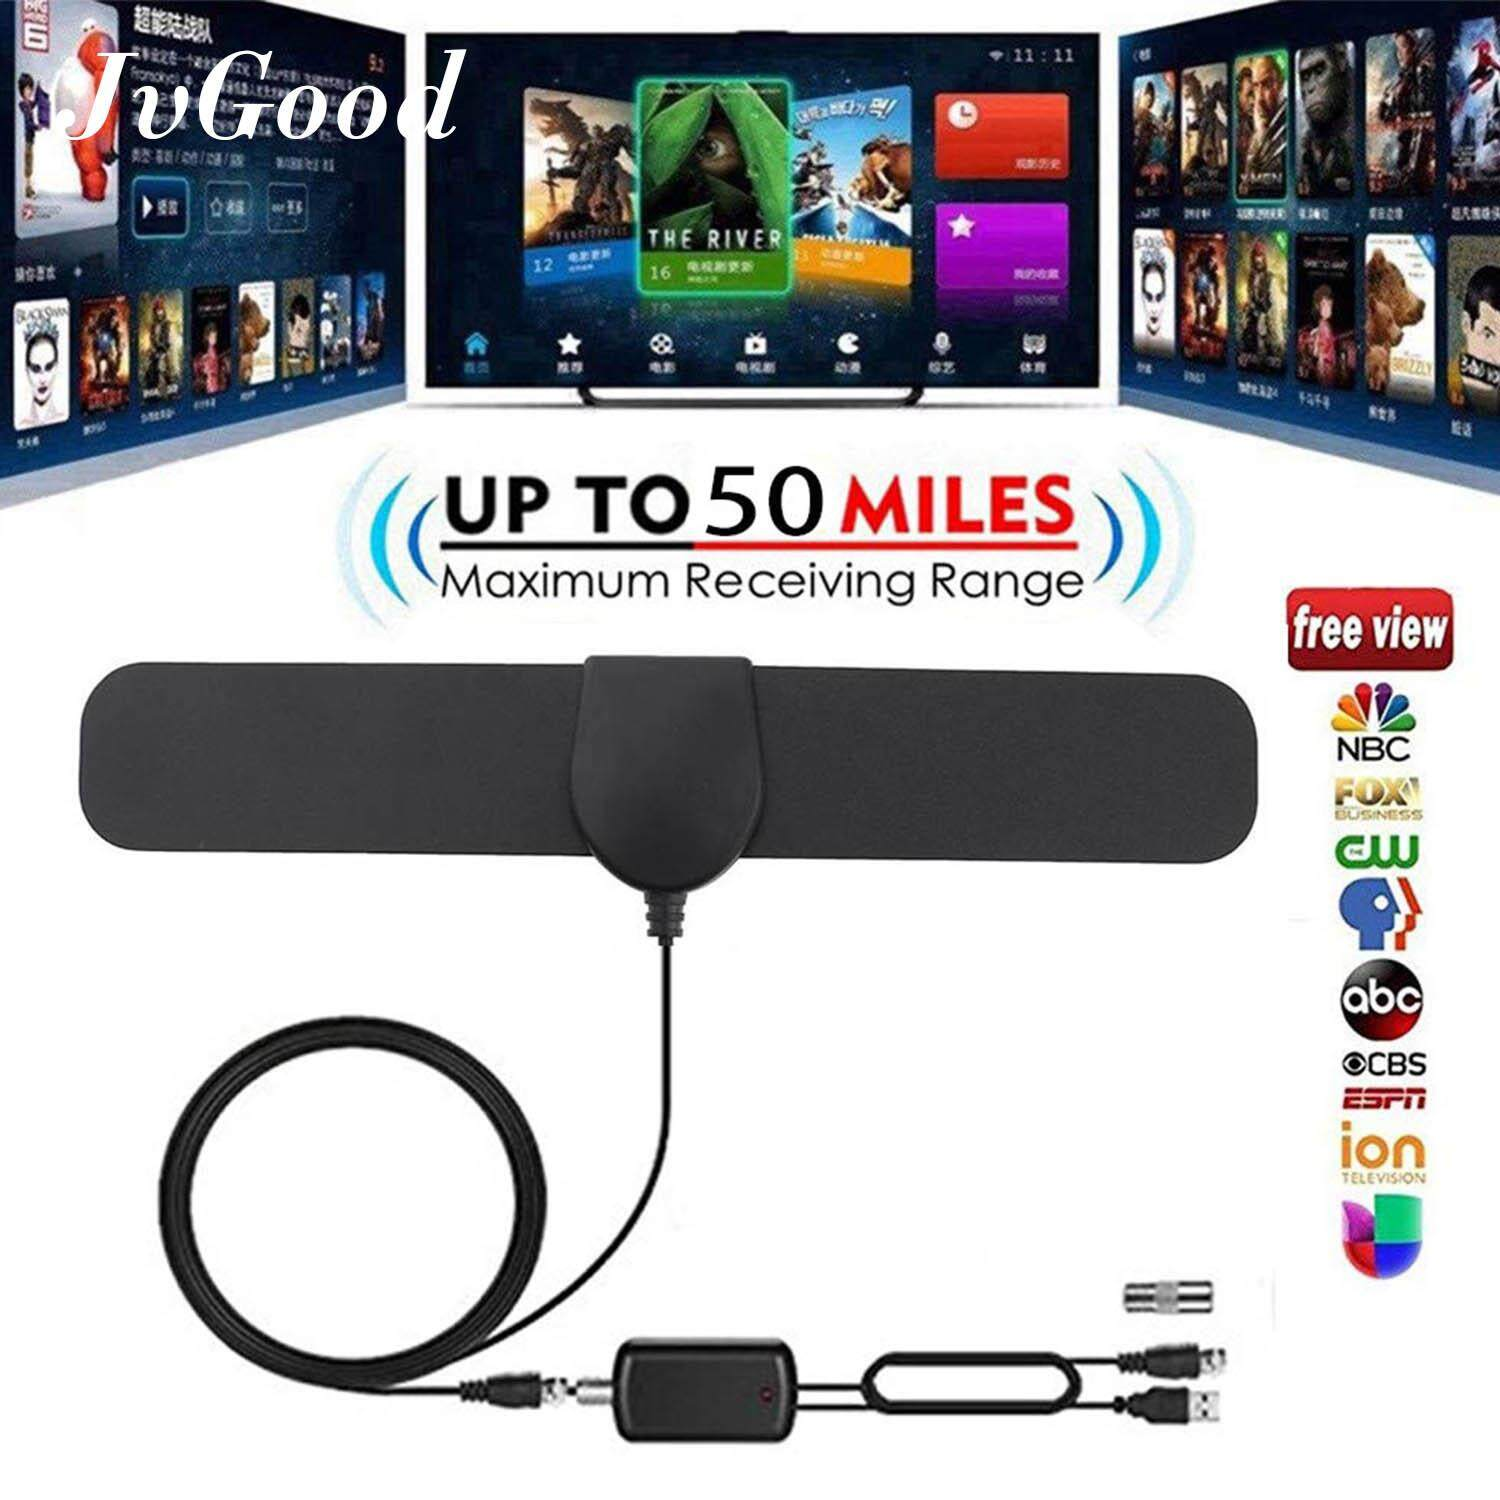 JvGood Amplified HD Digital TV Antenna Long 50 Miles Range Support 1080p  TV's Indoor Powerful HDTV Amplifier Signal Booster- 4M Cable